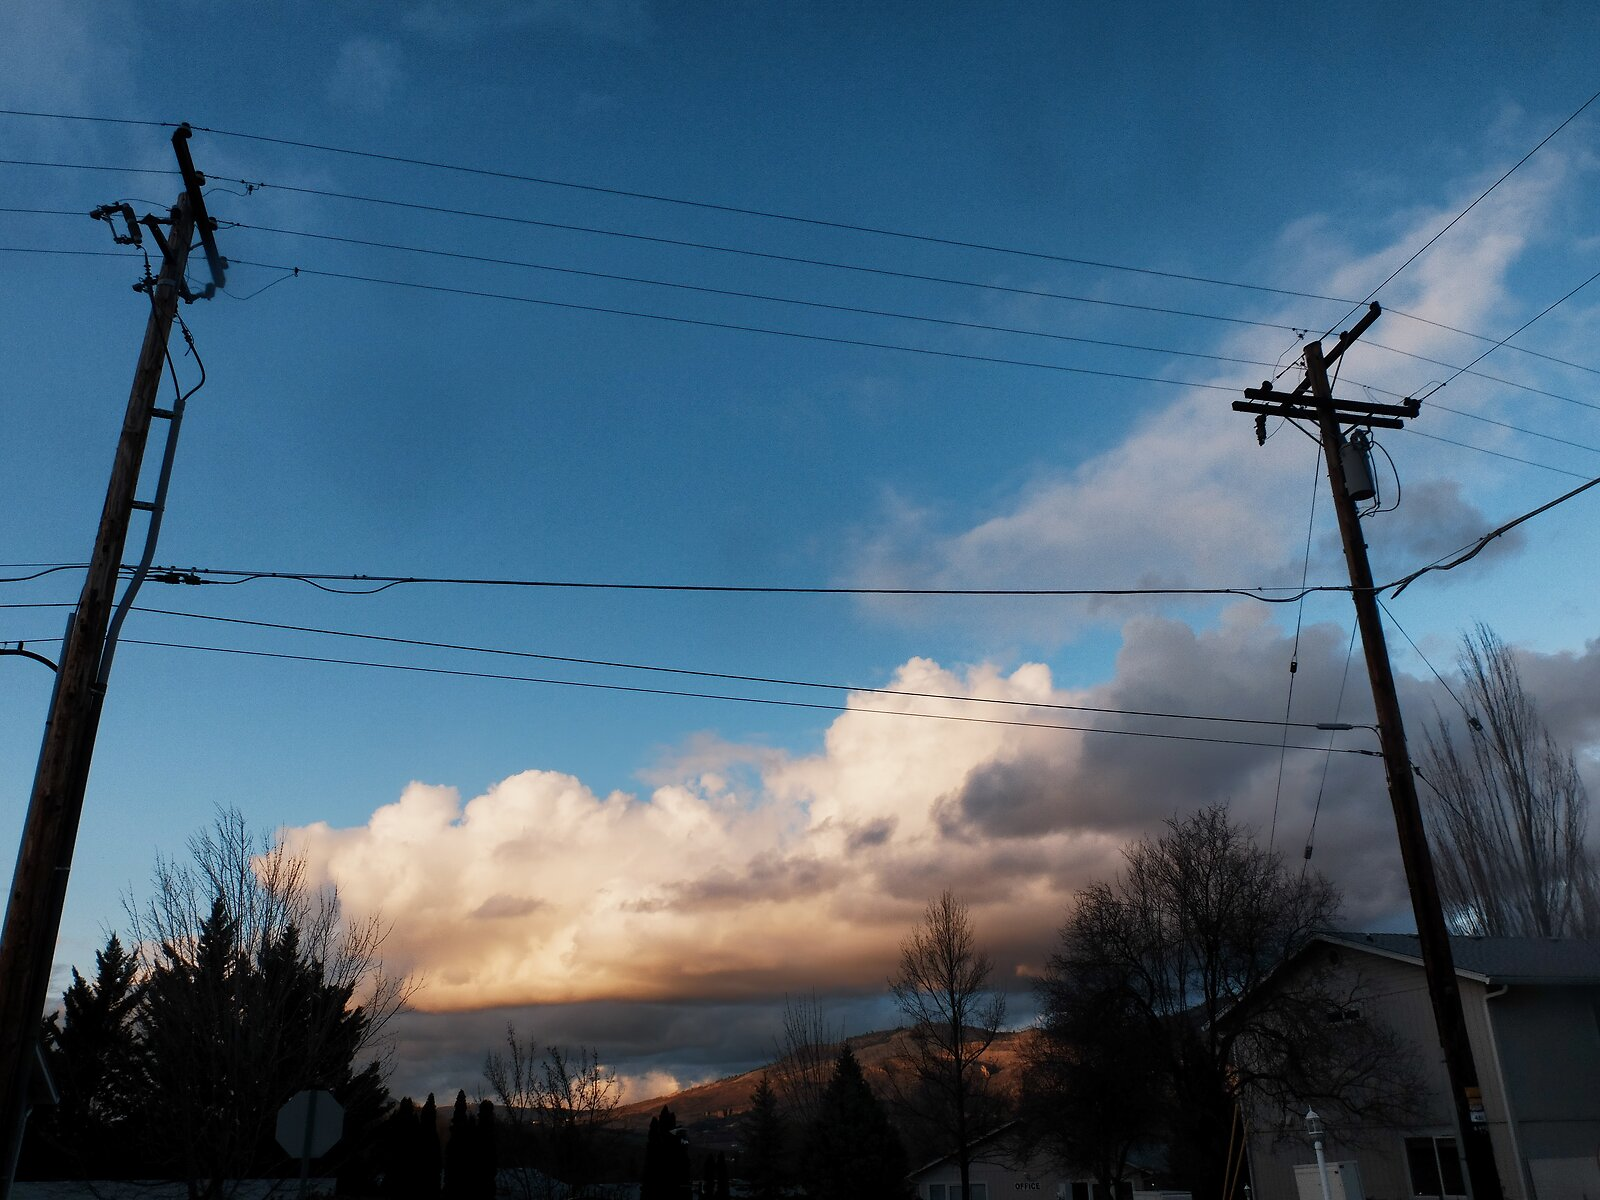 X30_Feb16_21_Winter_afternoon_cloudy_sky.jpg